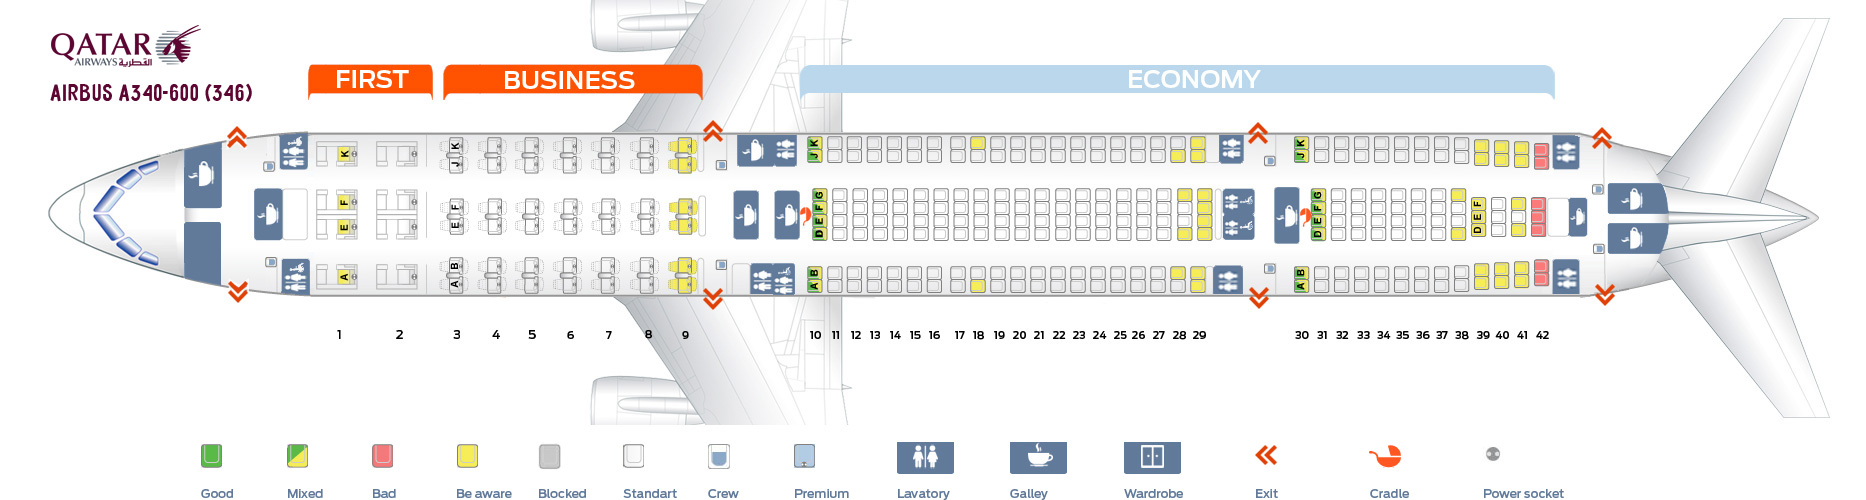 Seat Map Airbus A340-600 Qatar Airways